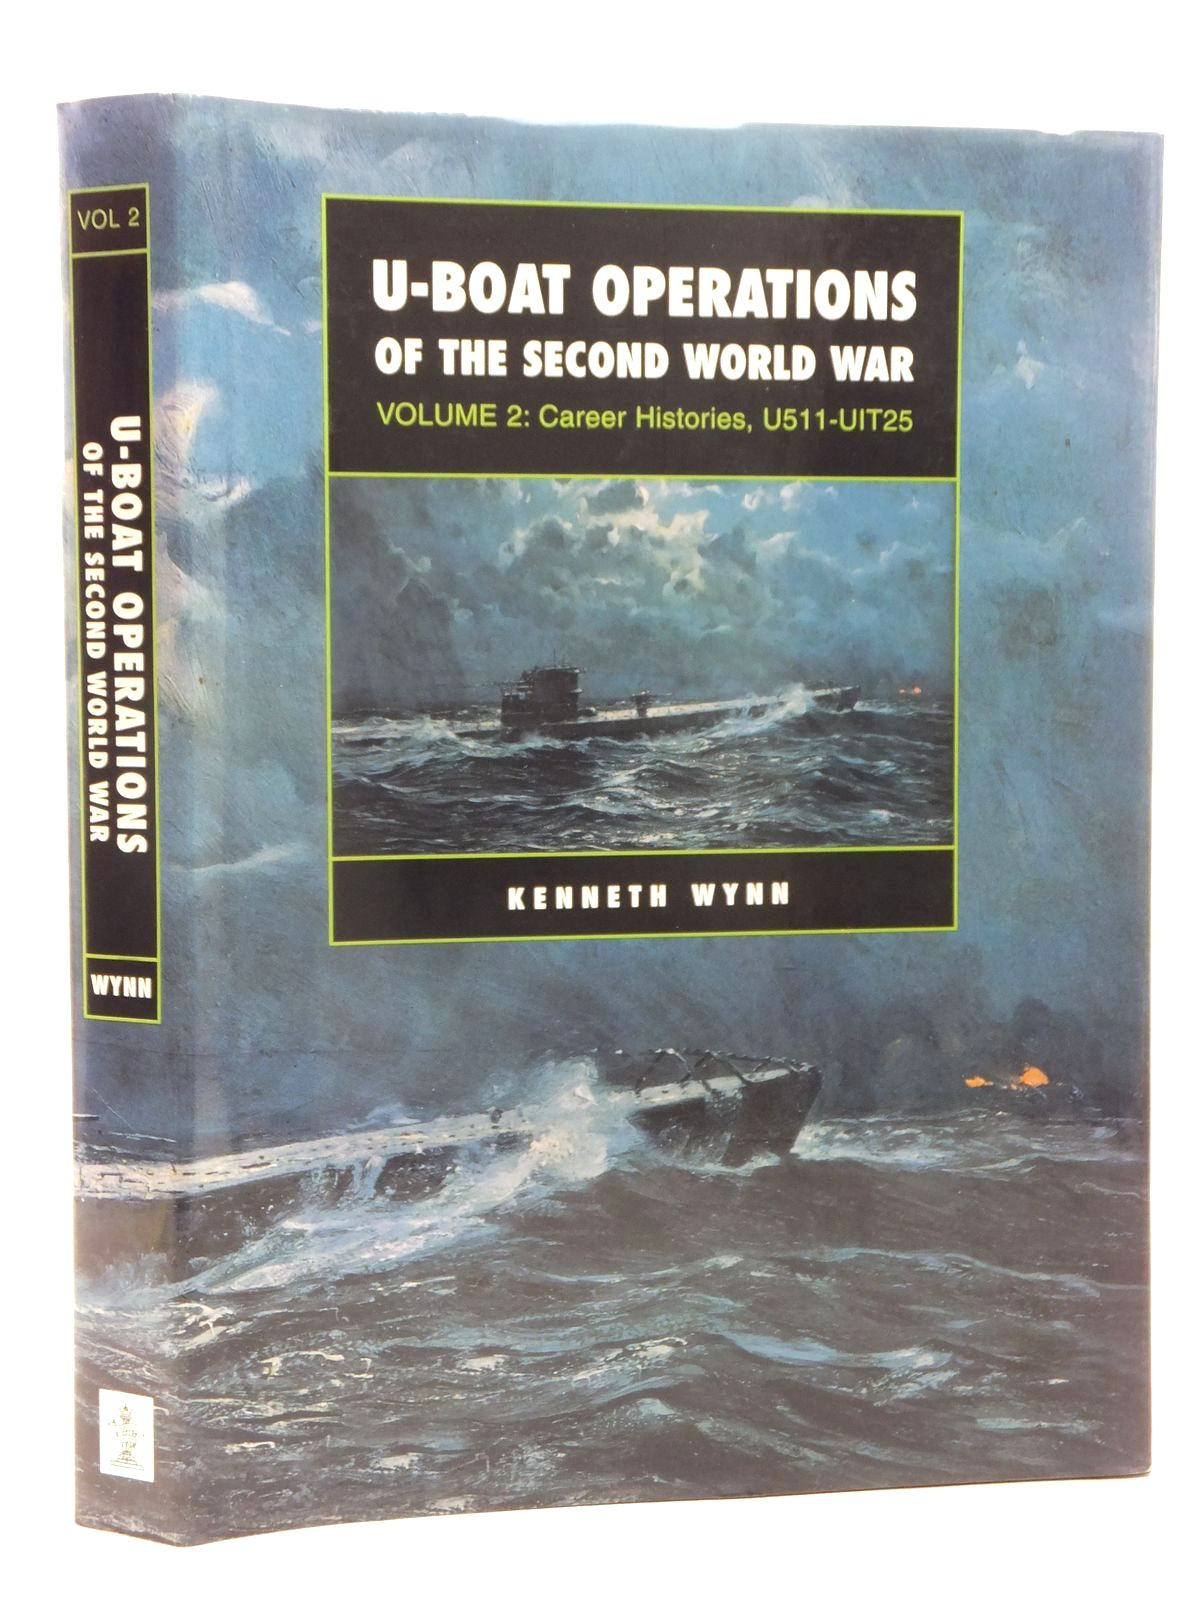 Photo of U-BOAT OPERATIONS OF THE SECOND WORLD WAR VOLUME 2: CAREER HISTORIES U511-UIT25 written by Wynn, Kenneth published by Caxton Editions (STOCK CODE: 1815415)  for sale by Stella & Rose's Books